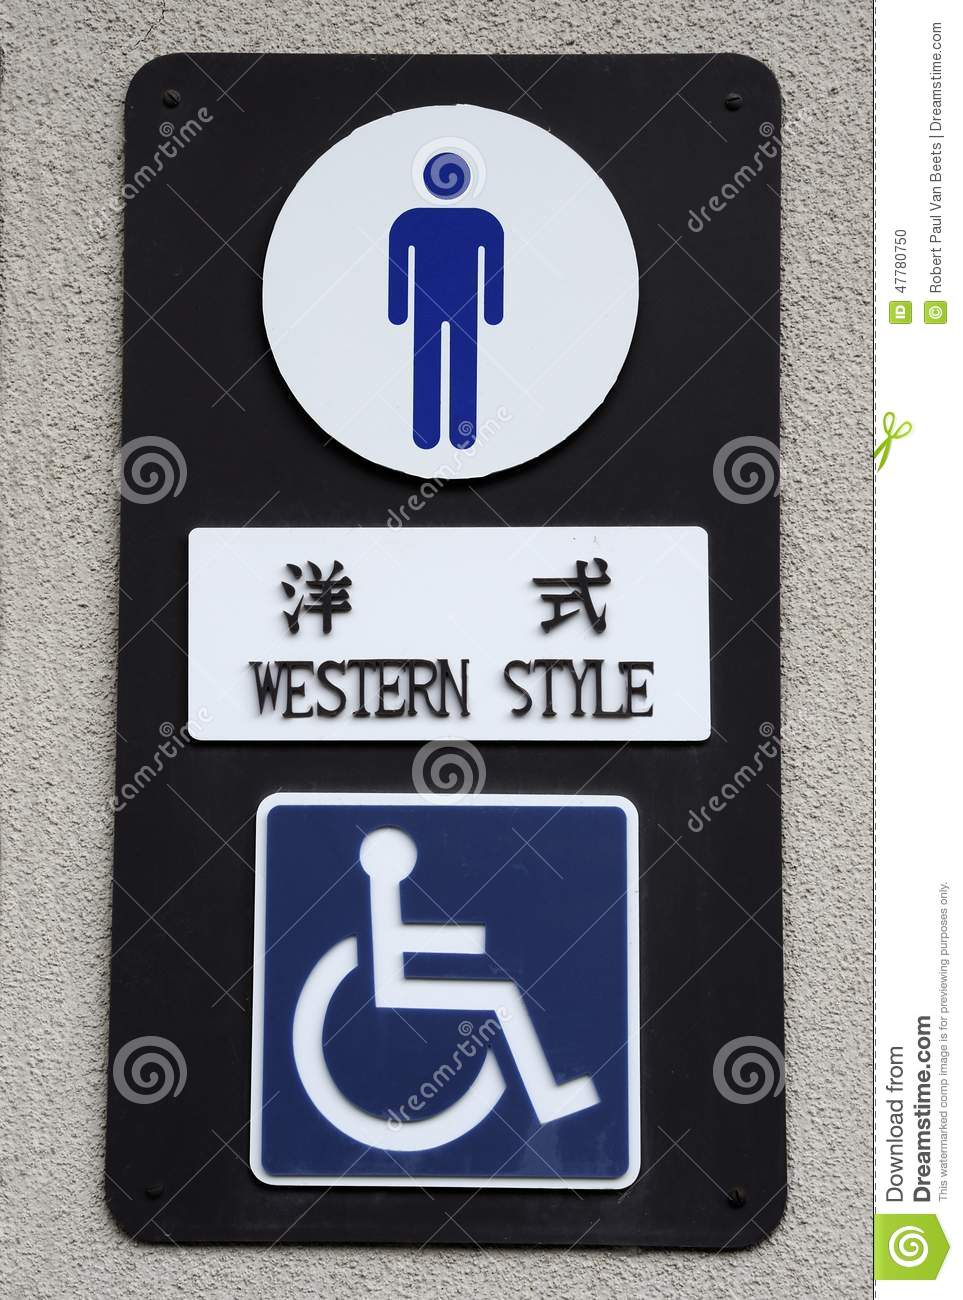 Bathroom Signs Japan toilet sign in japan stock illustration - image: 47780750